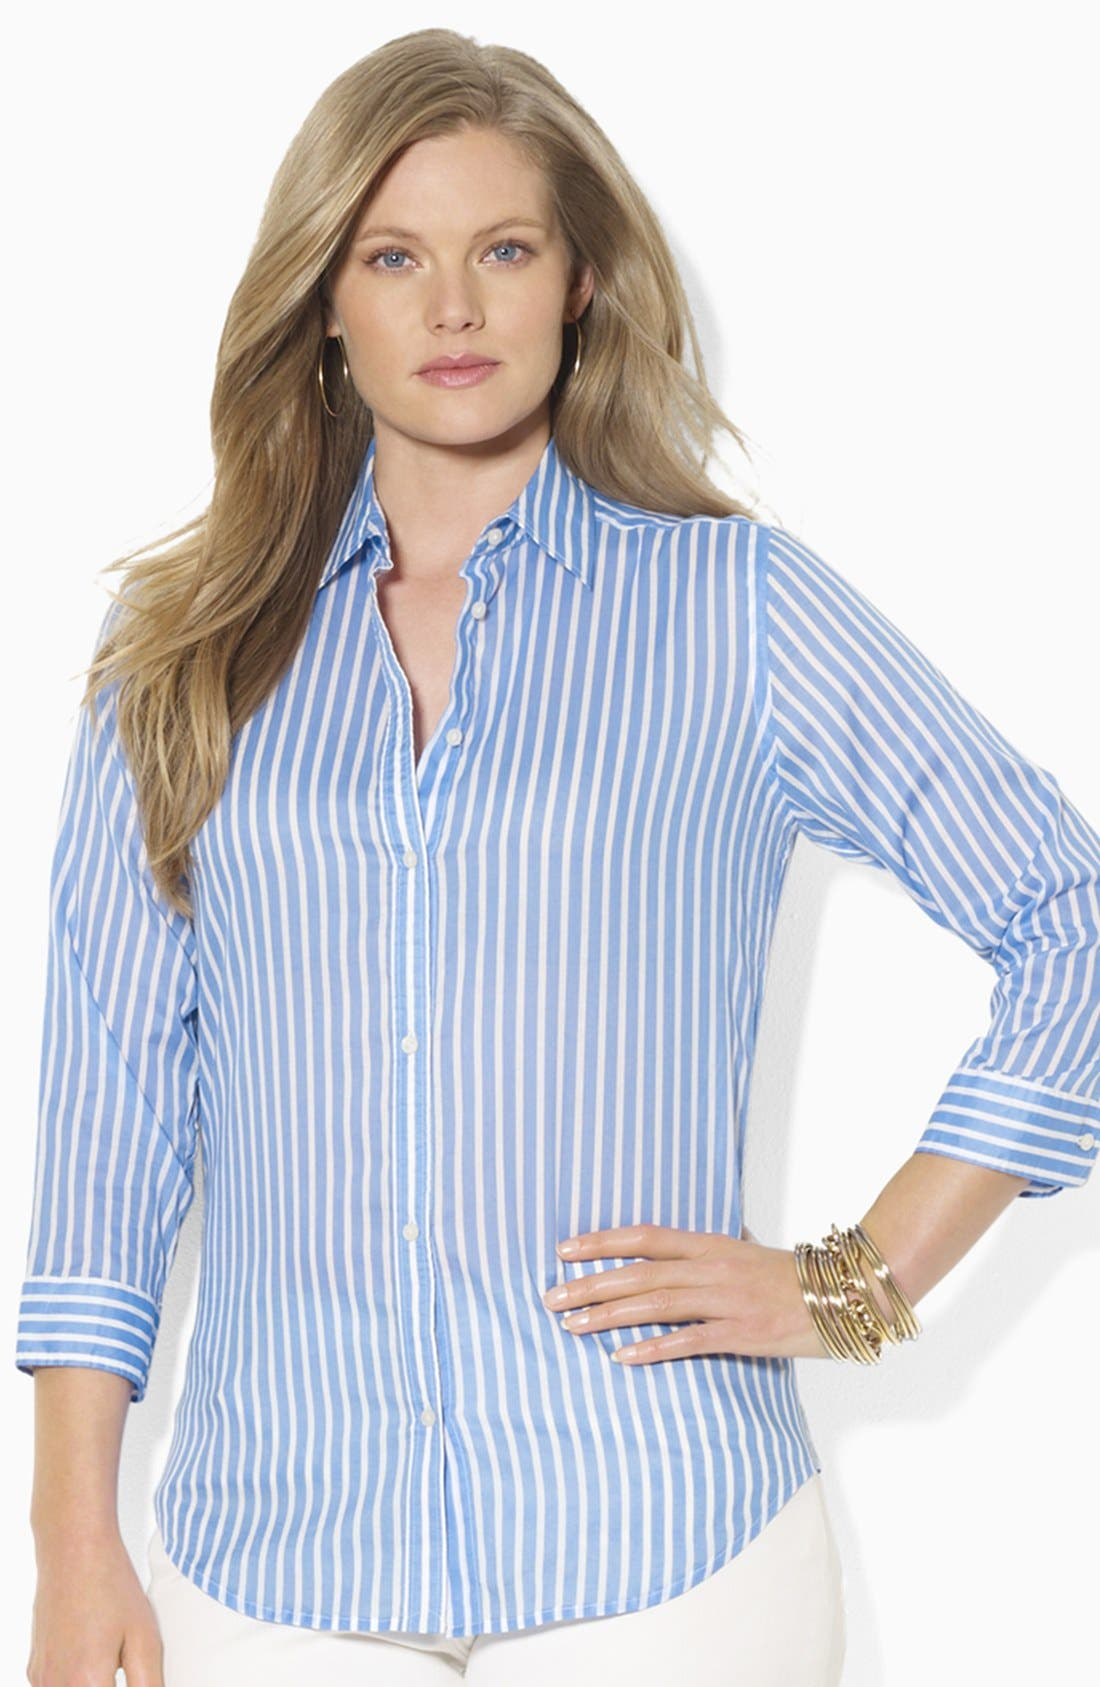 Alternate Image 1 Selected - Lauren Ralph Lauren Stripe Cotton Shirt (Plus Size)